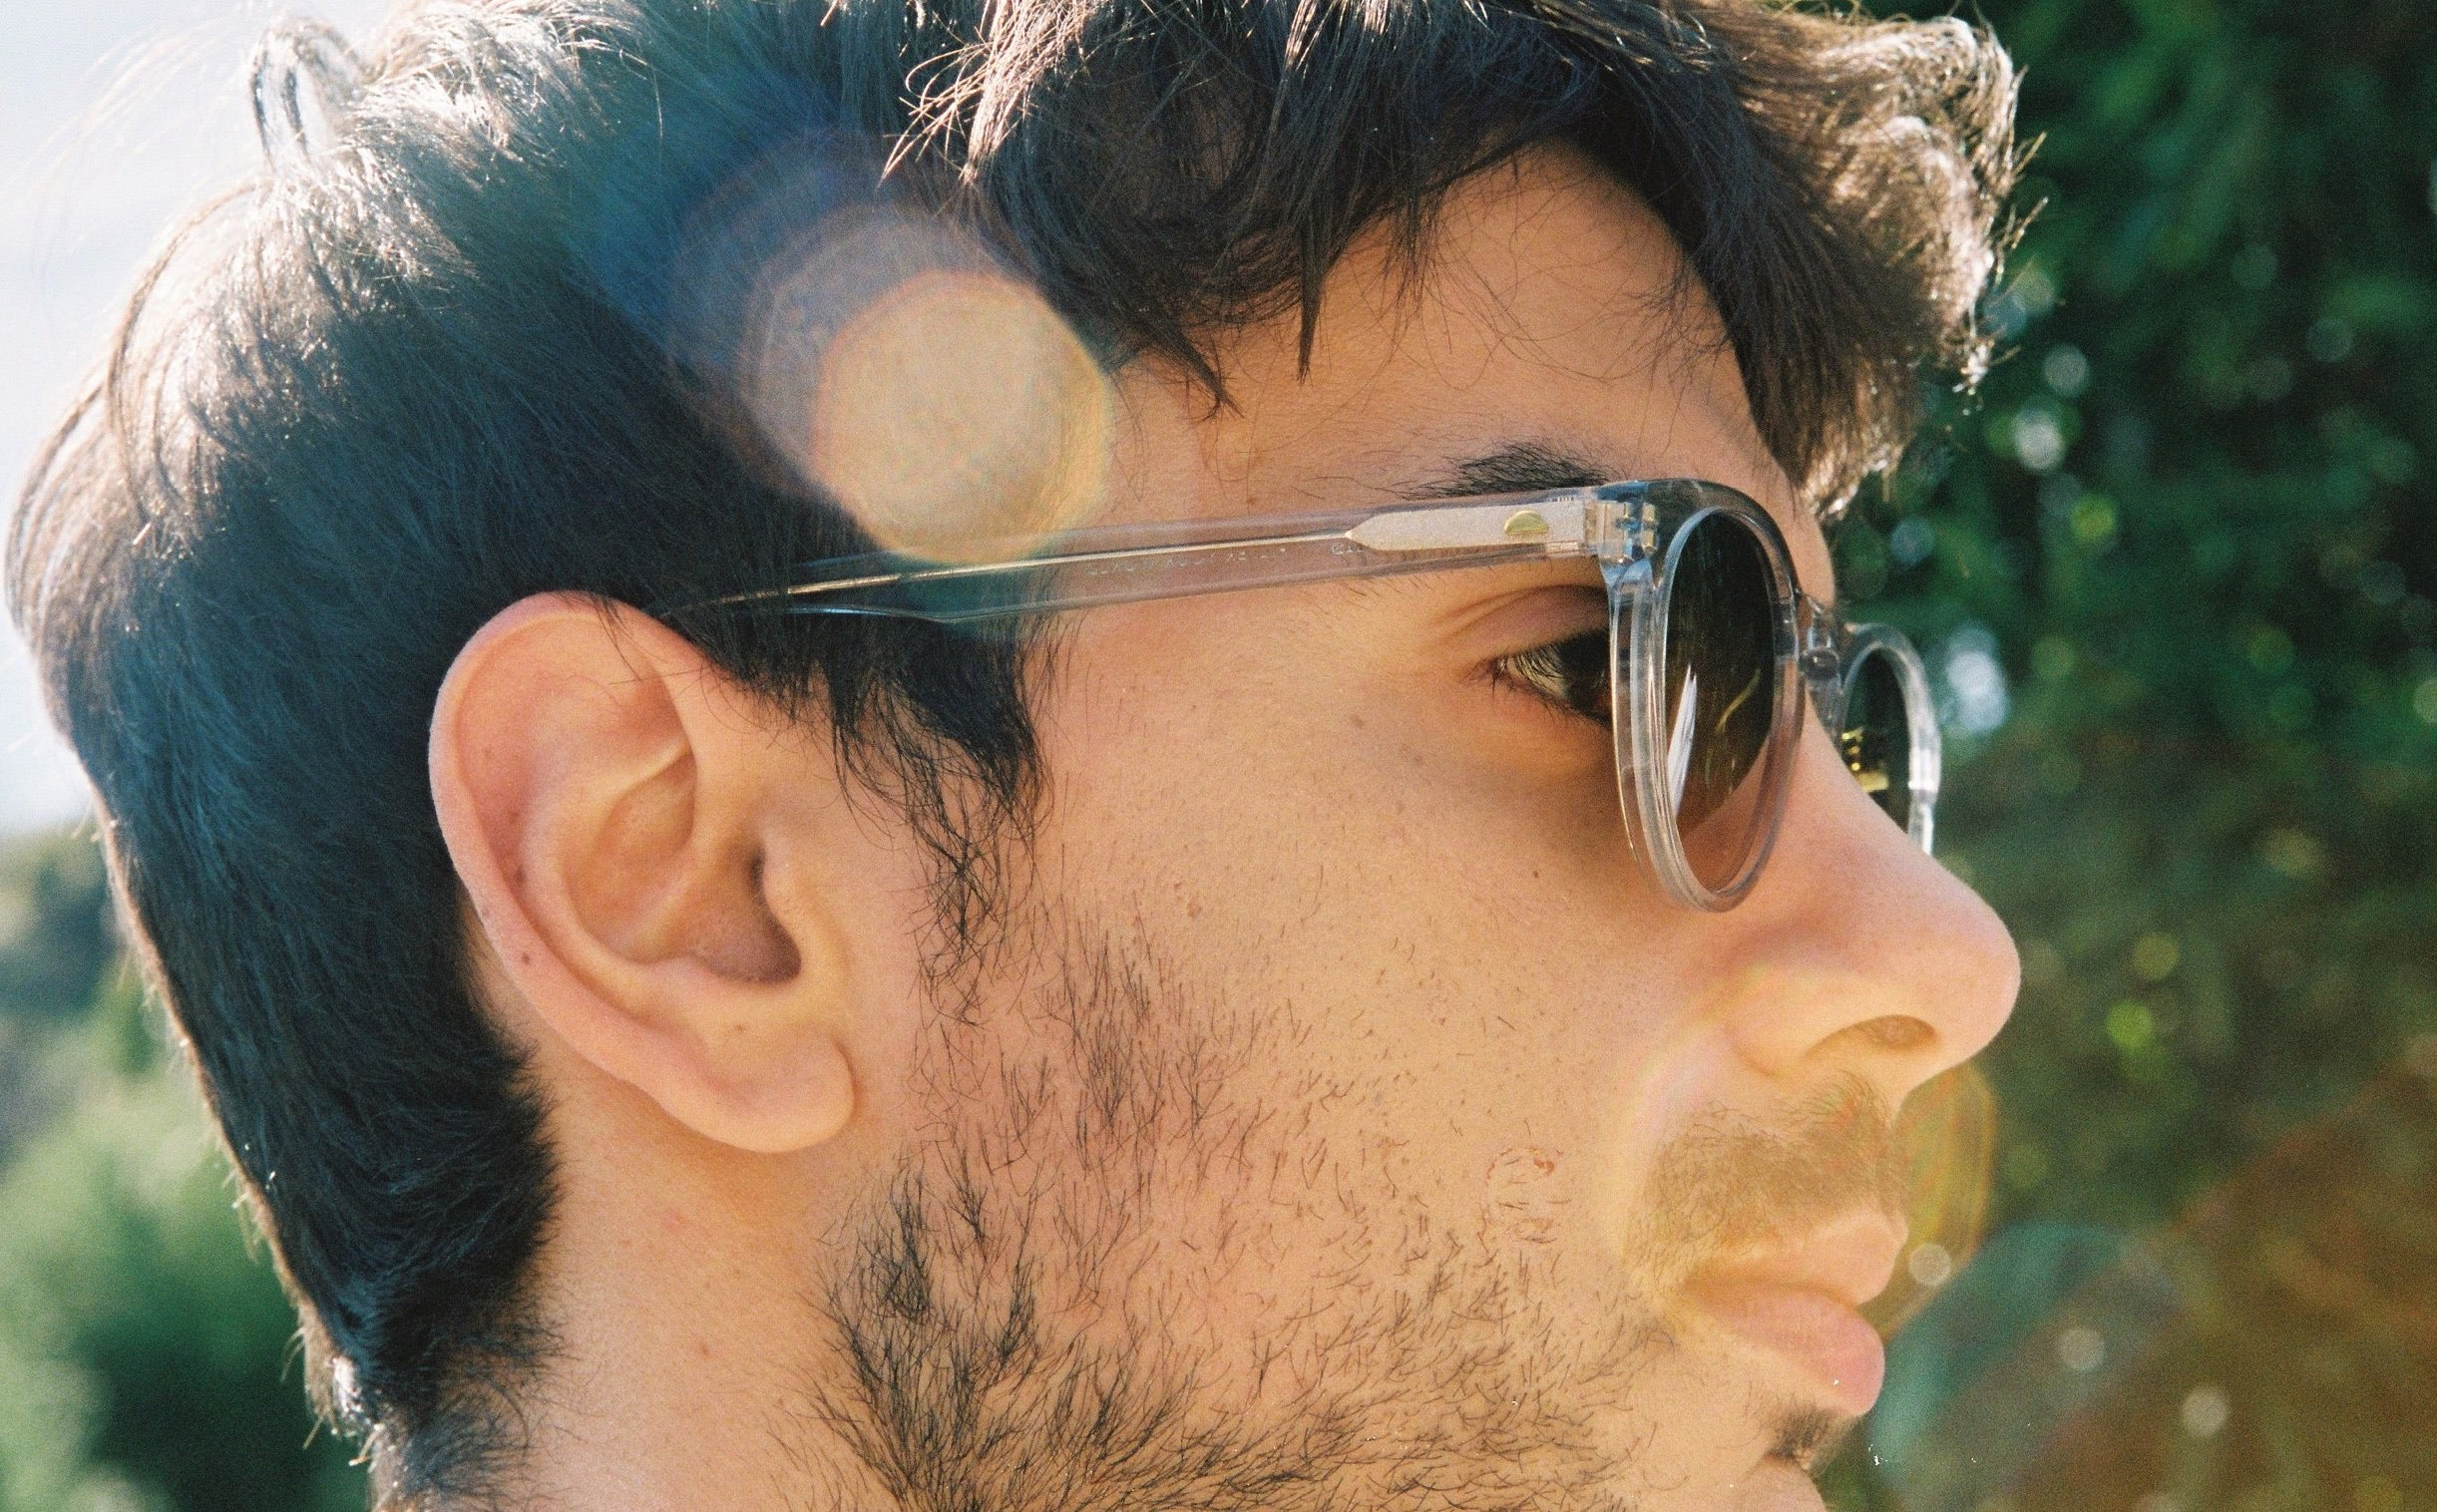 A man wearing Ten's original sunglasses